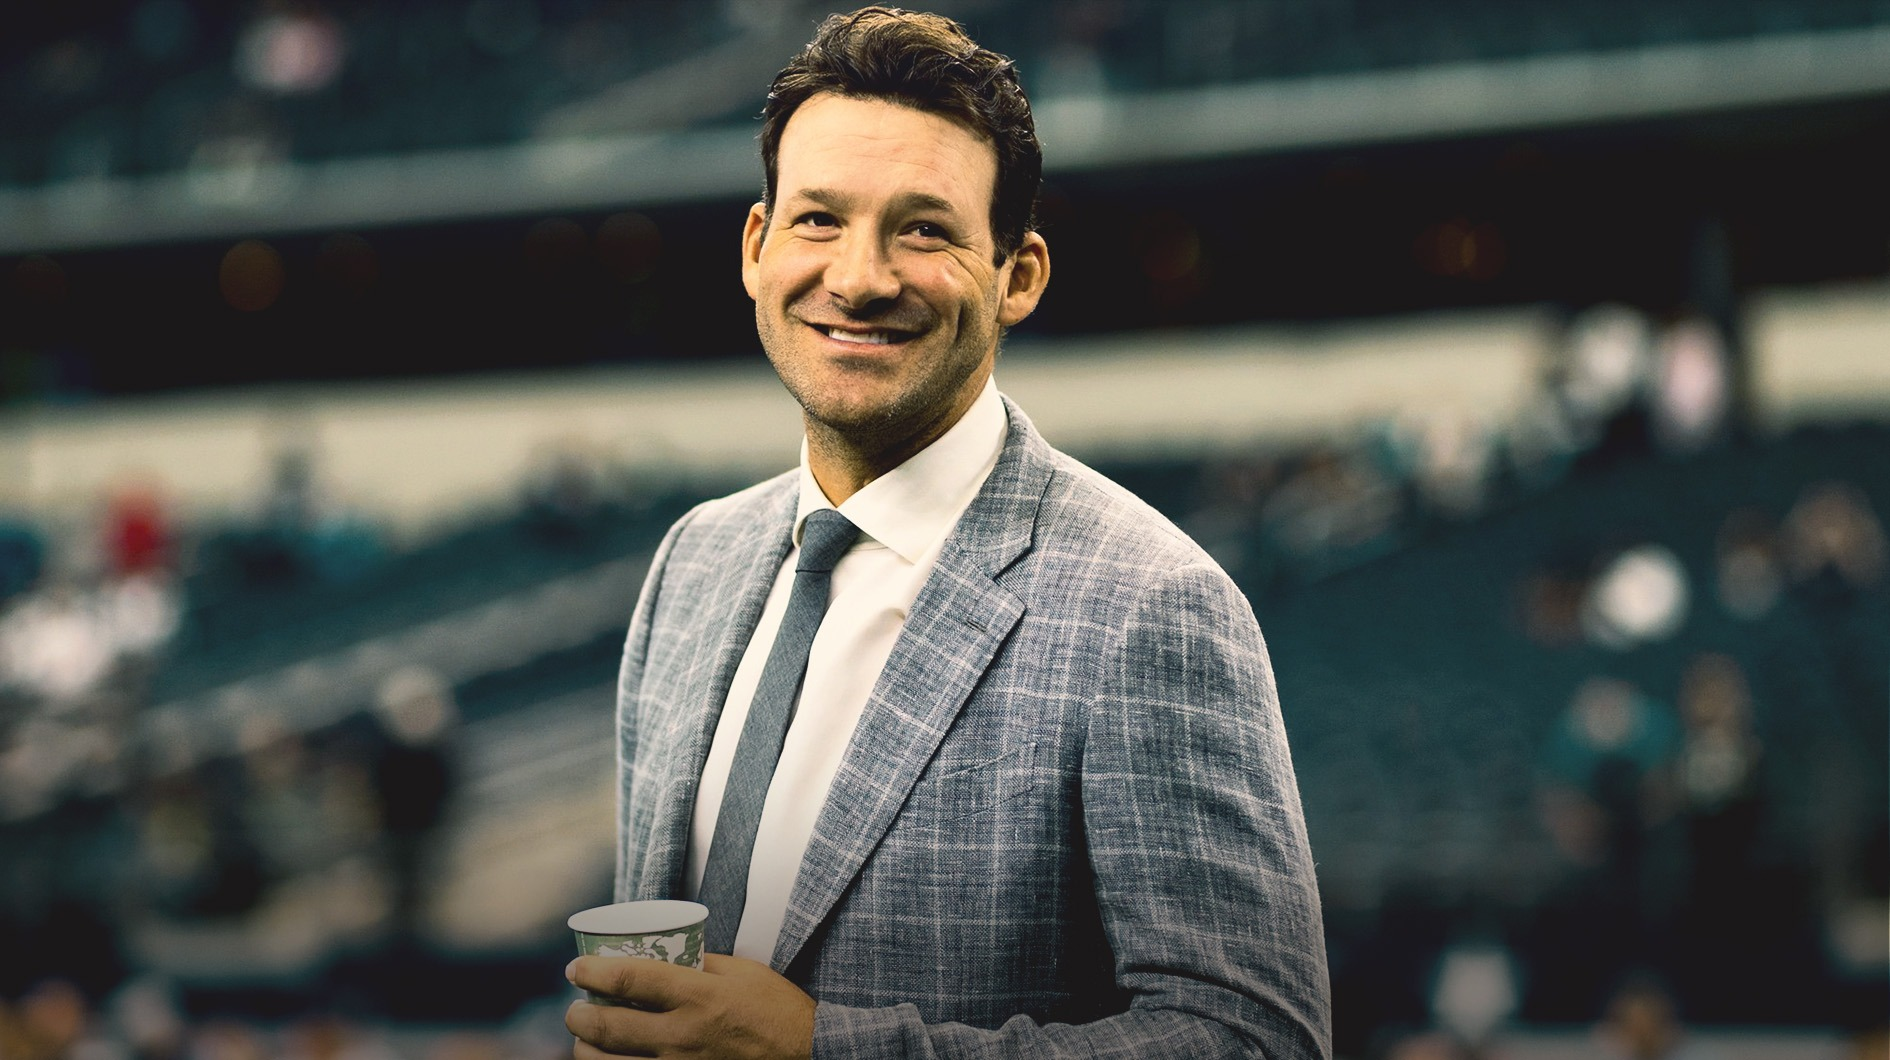 Ex Cowboys QB Tony Romo Being Offered 'Double His Salary' to Move to ESPN